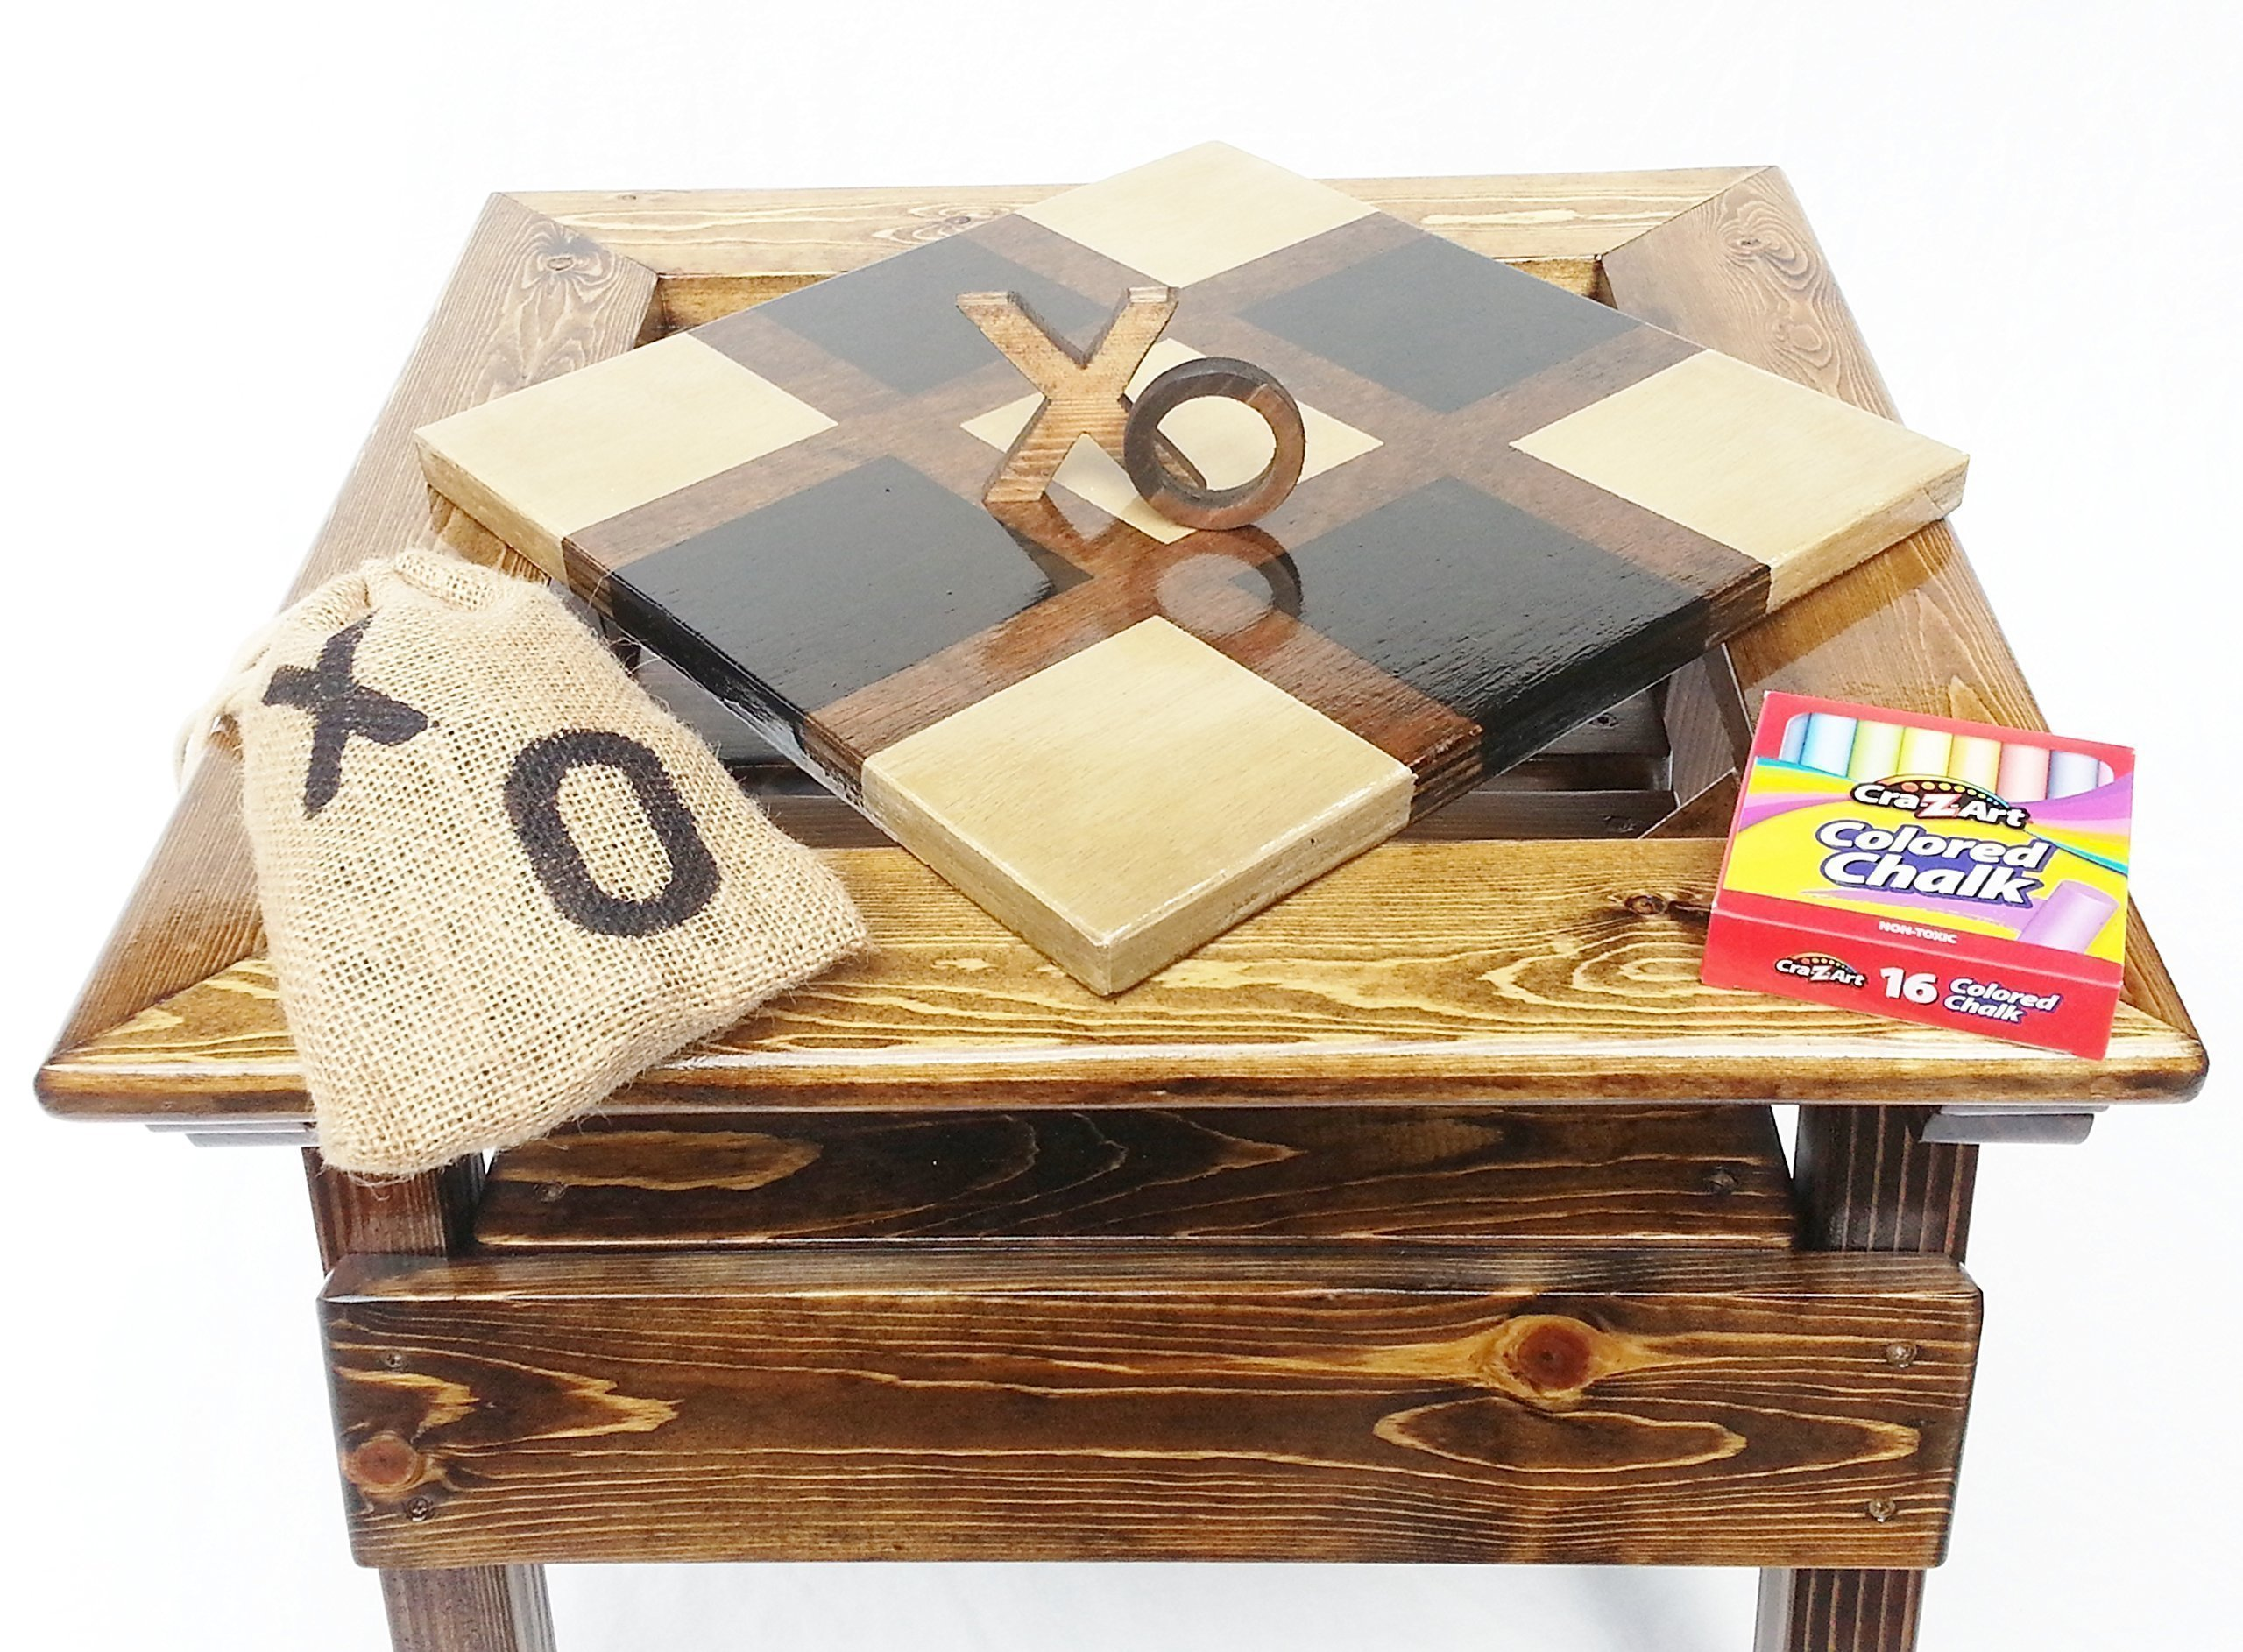 Kids Tic Tac Toe and Chalkboard, 2-sided game board, Solid Wooden Game and Activity Table, Children's Furniture, Toddler Boy or Girl